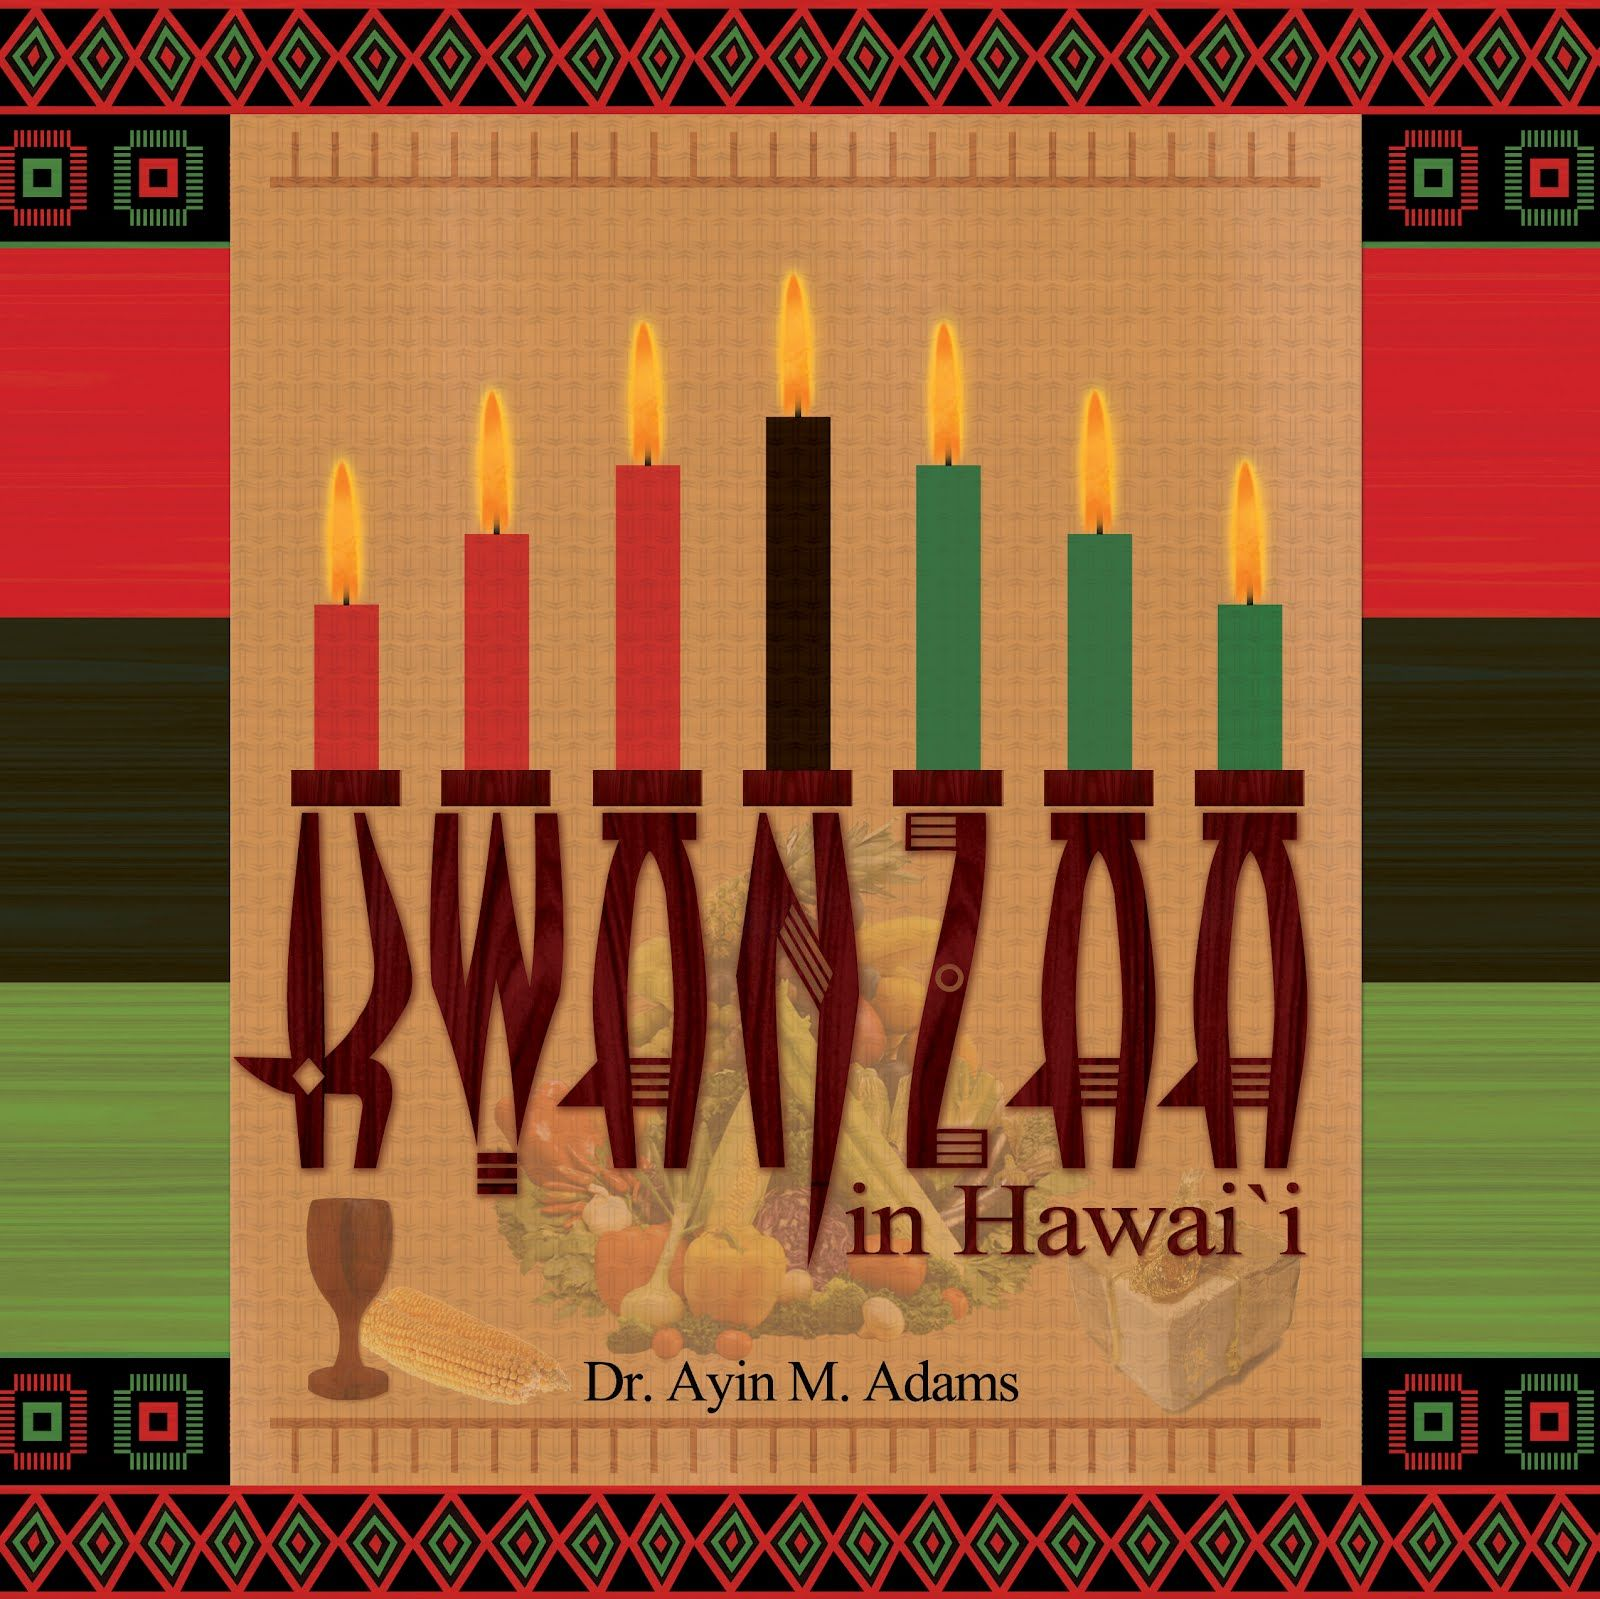 Pin By Islandsyrah On Kwanzaa 365